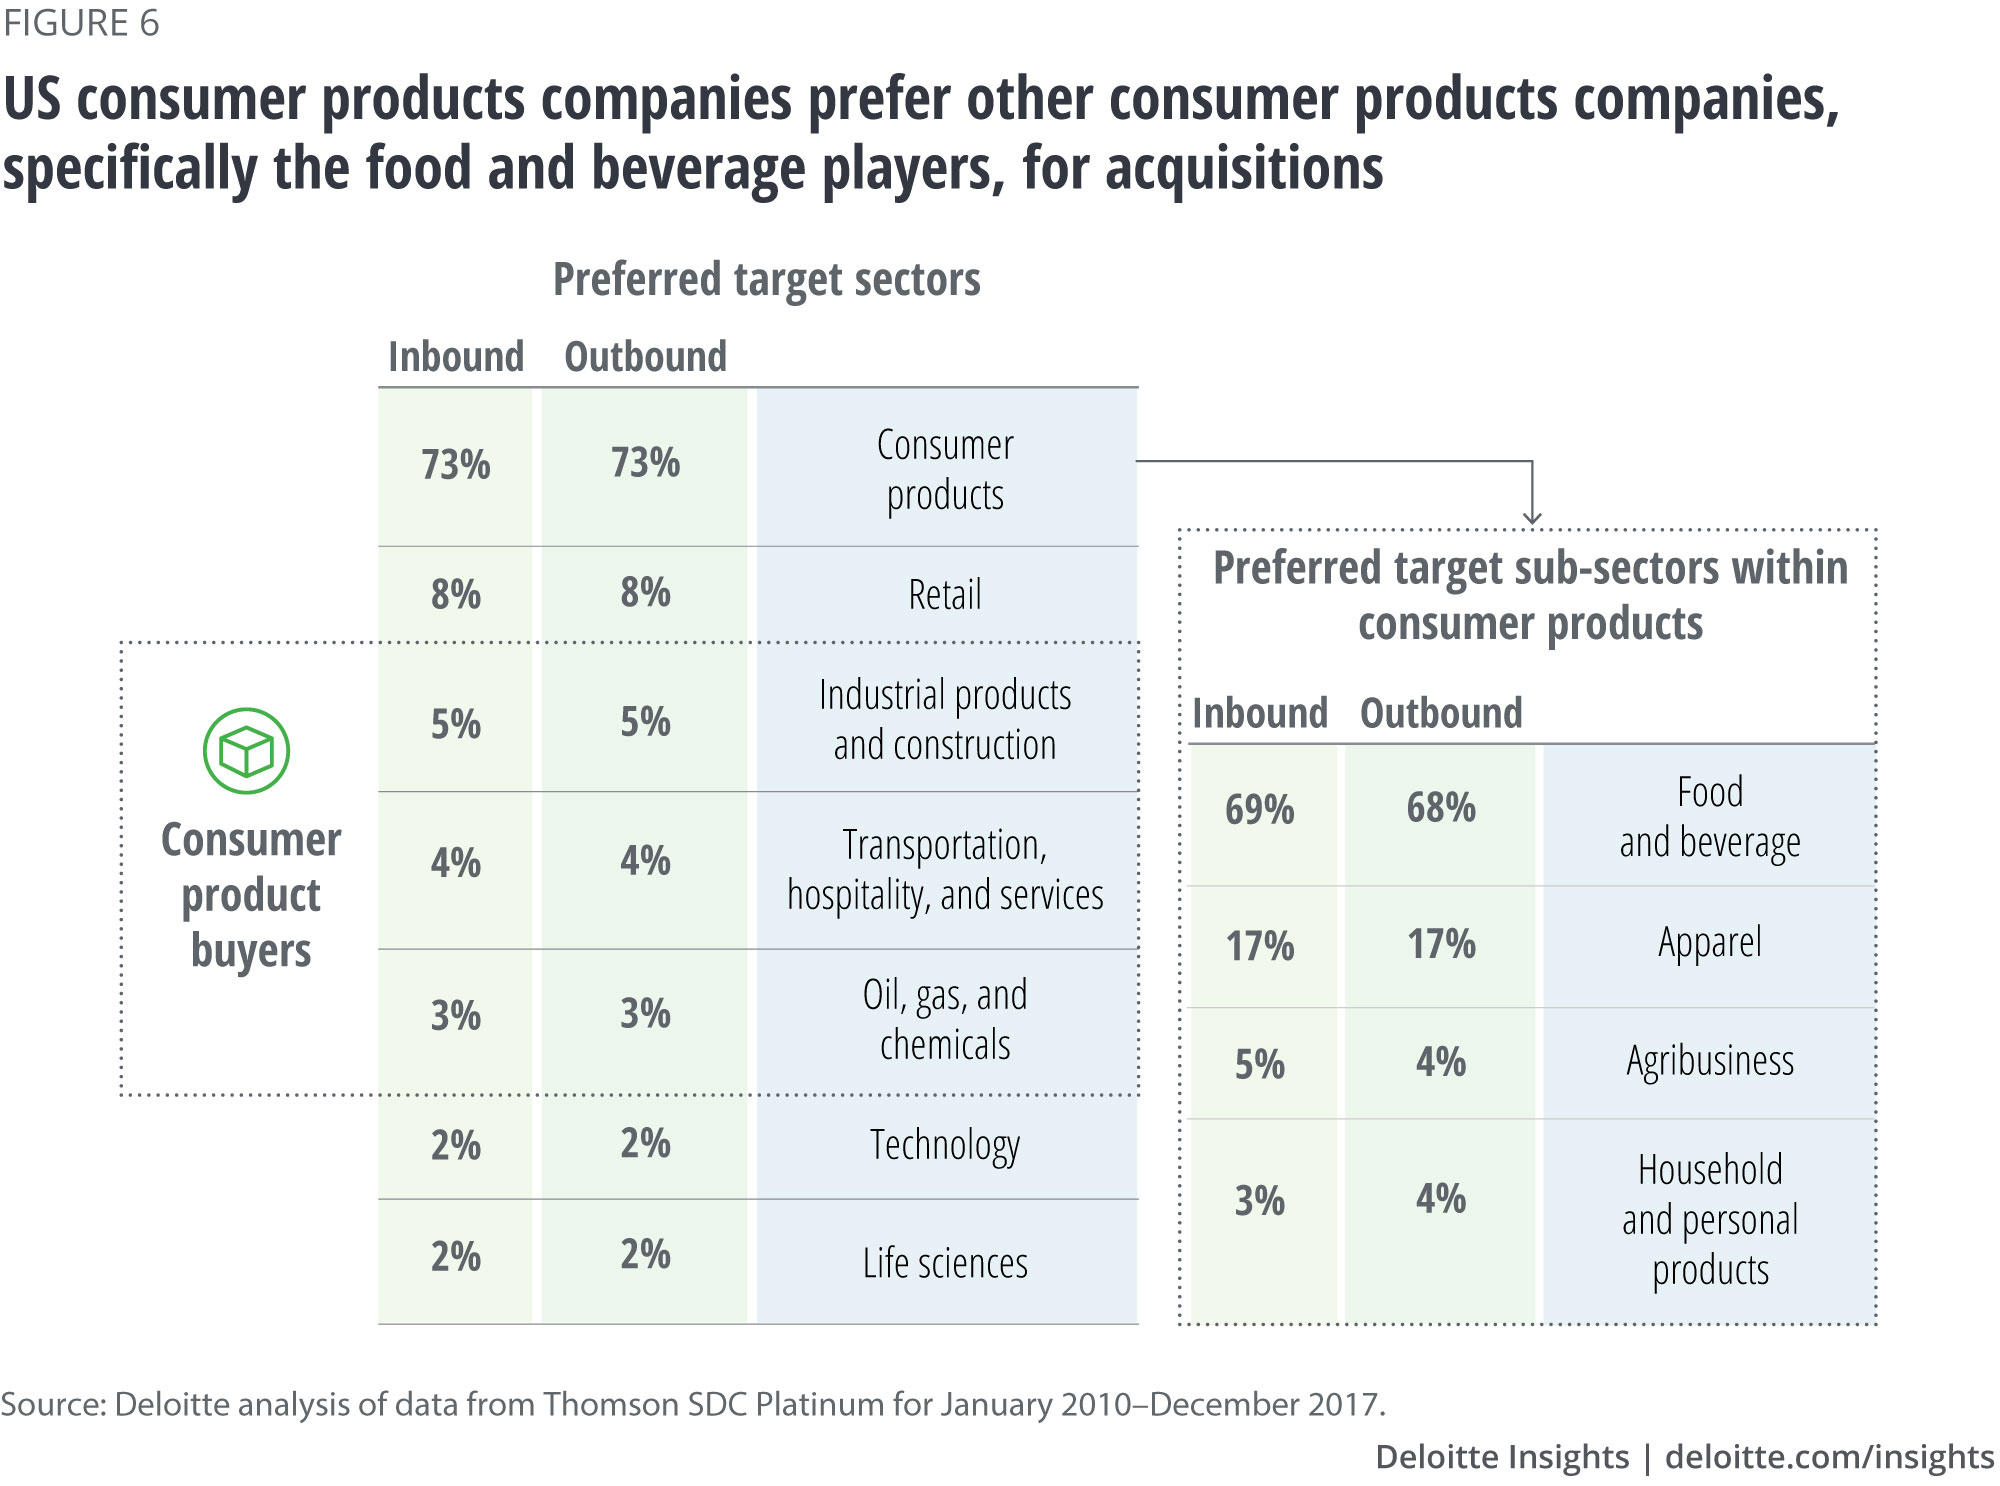 US consumer products companies prefer other consumer products companies, specifically the food and beverage players, for acquisitions